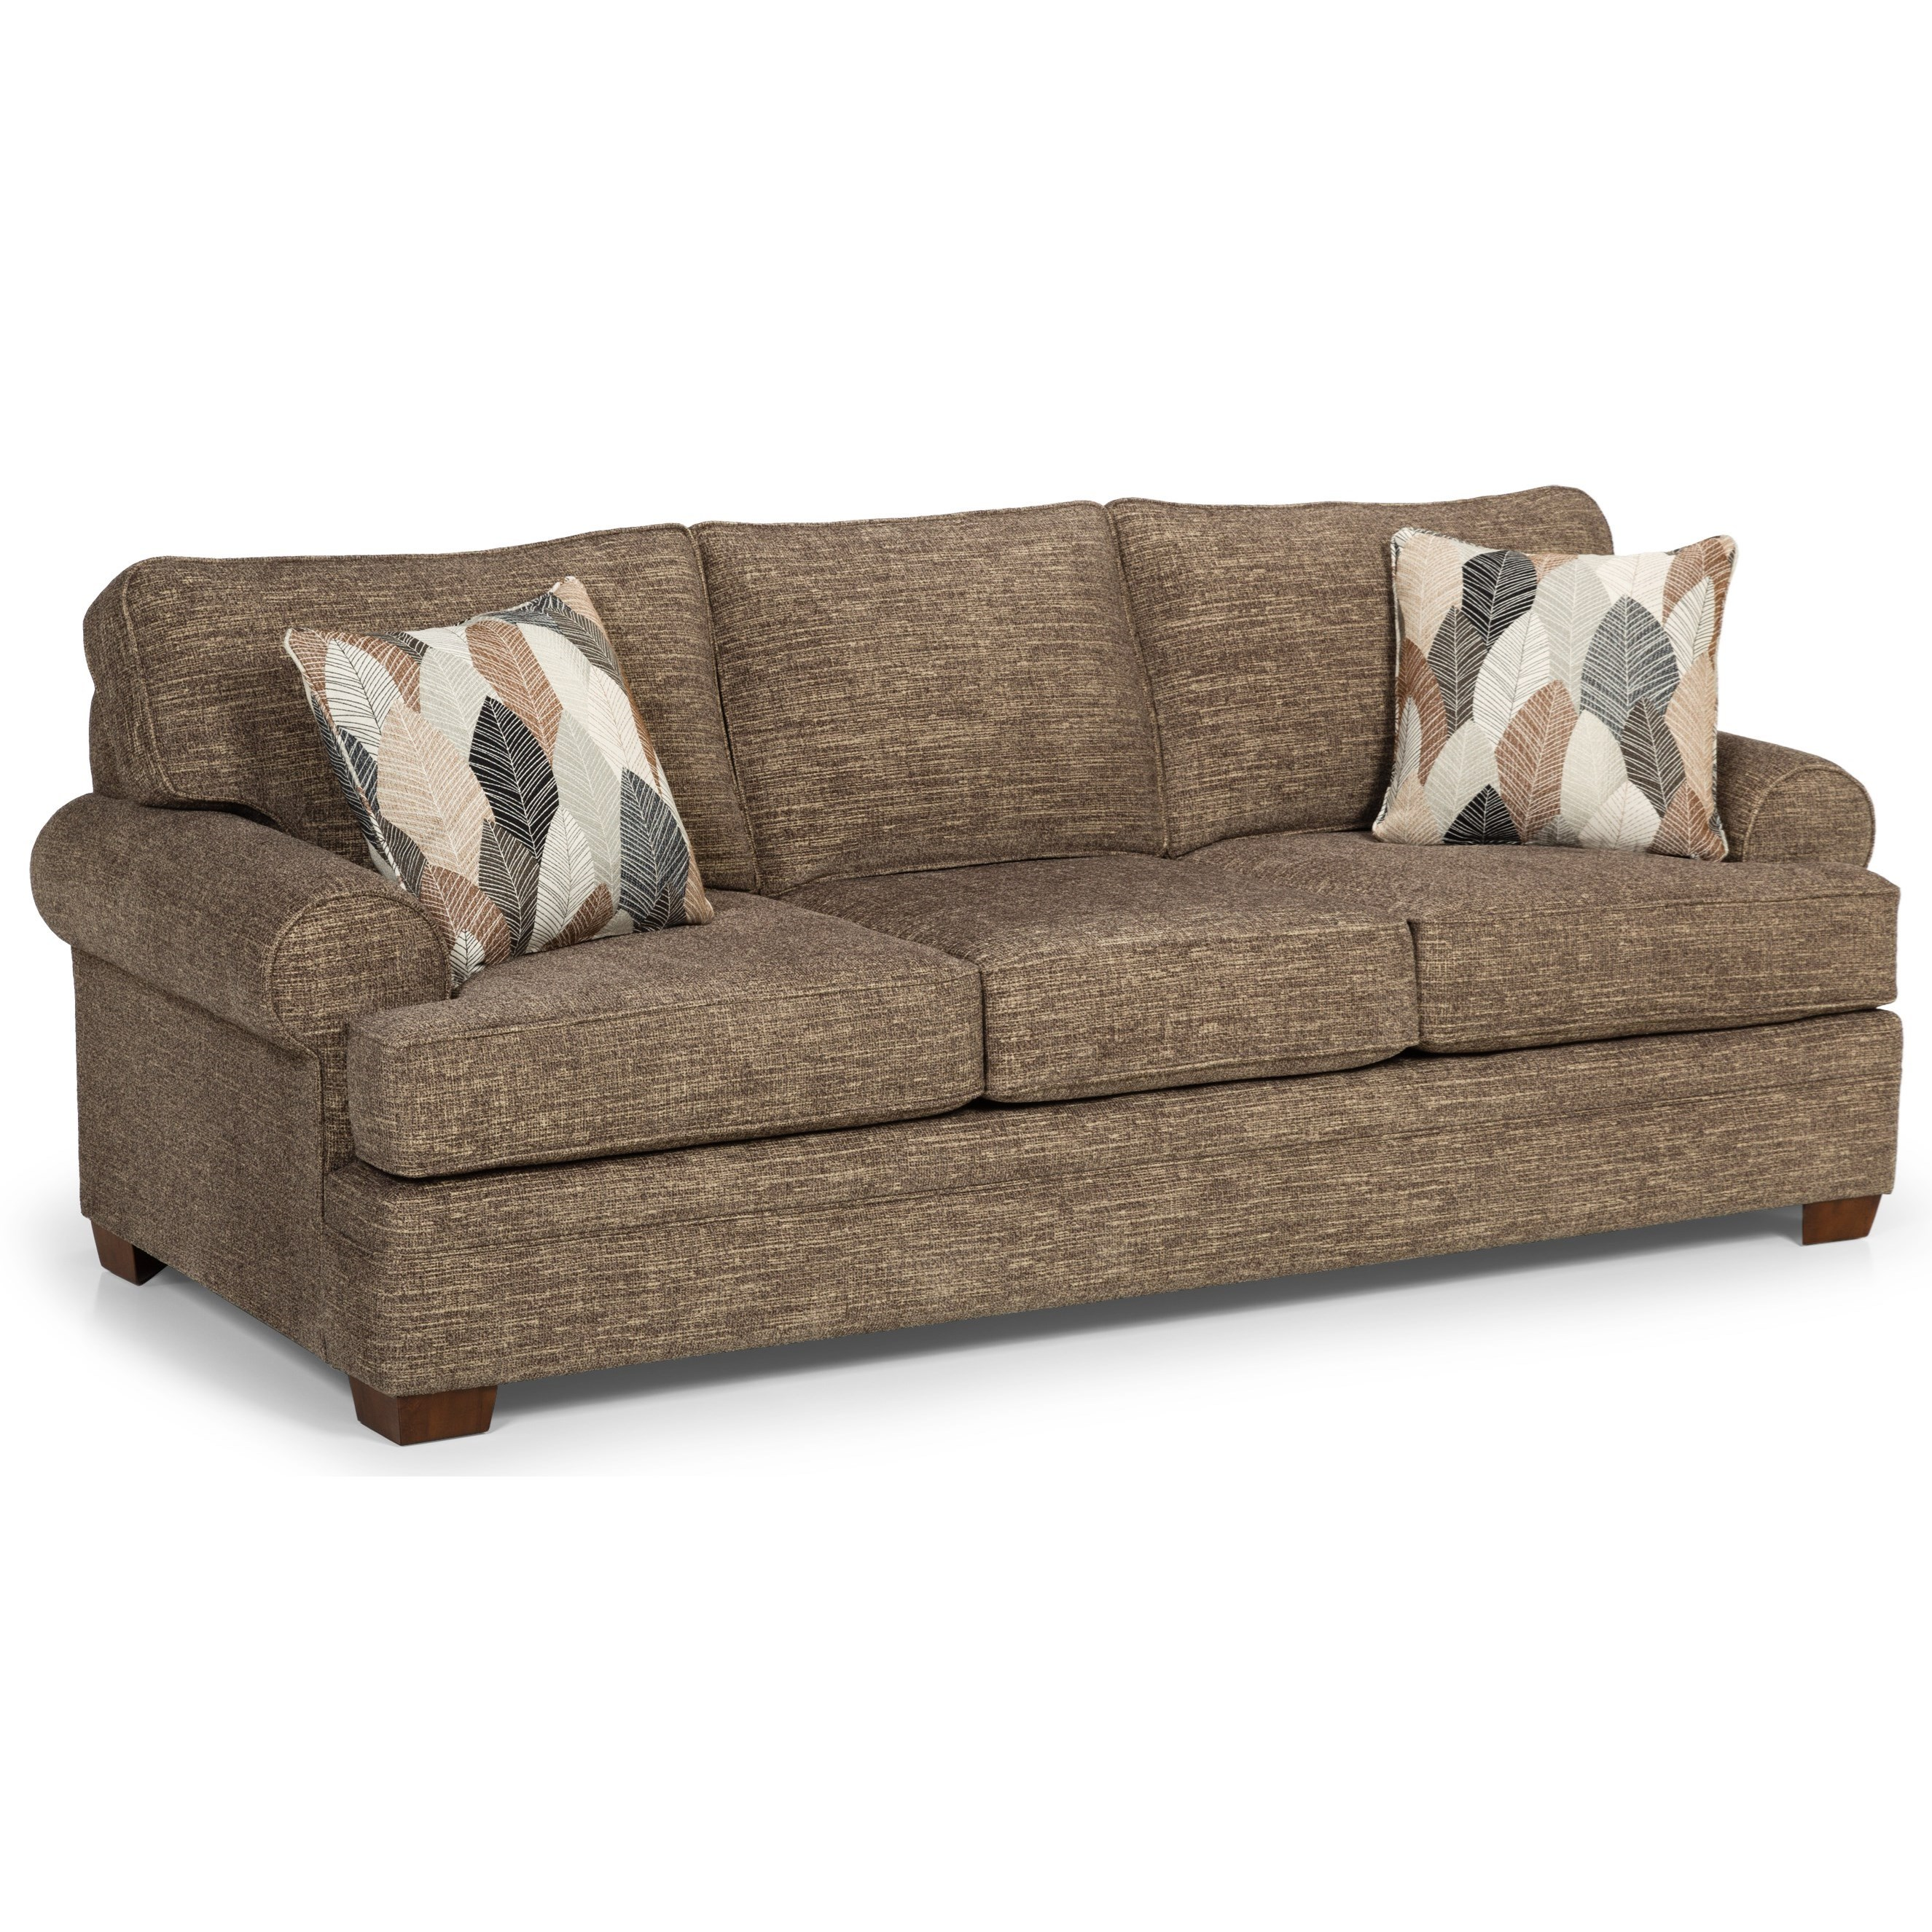 422 Sofa by Stanton at Wilson's Furniture